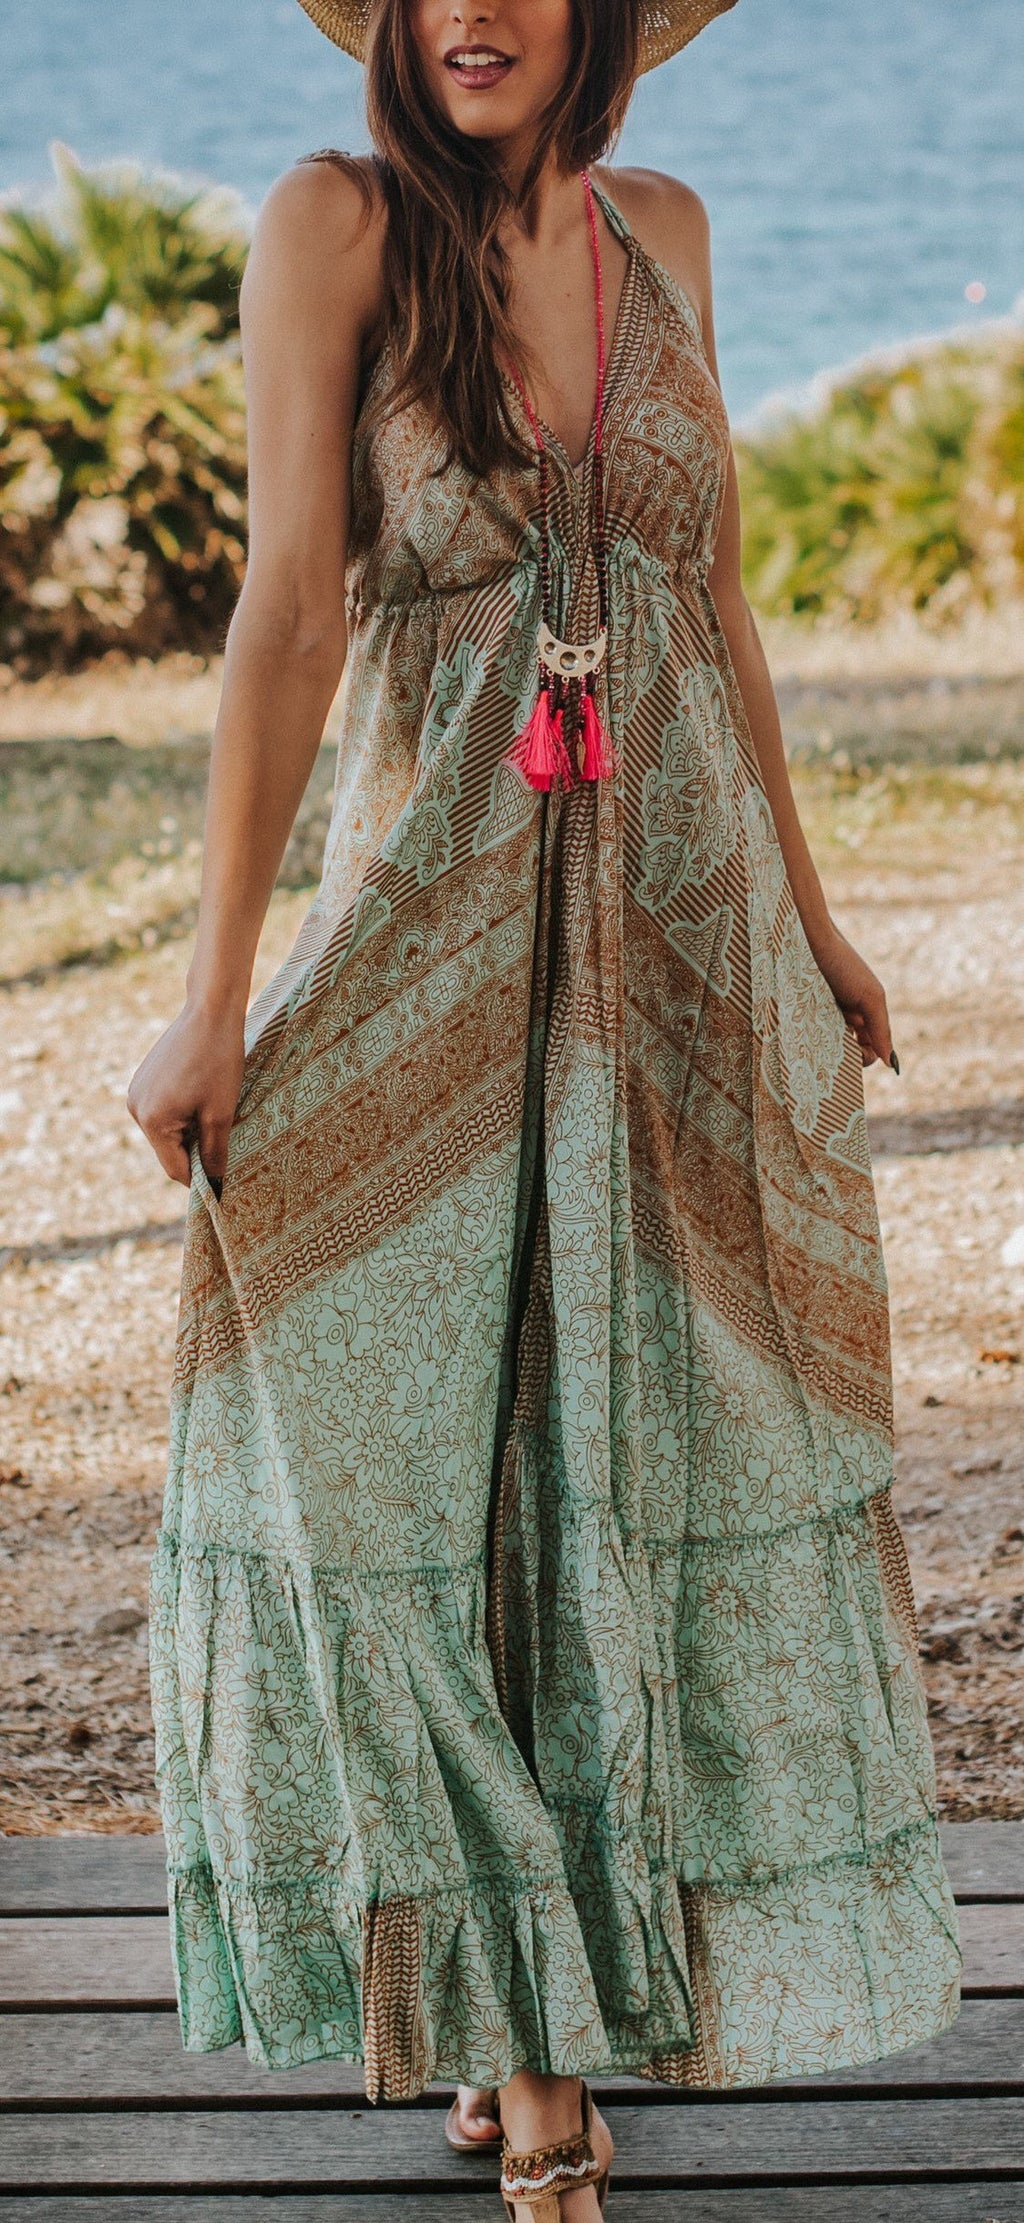 cruise dress resort wear vacation dress paisley bohemian maxi